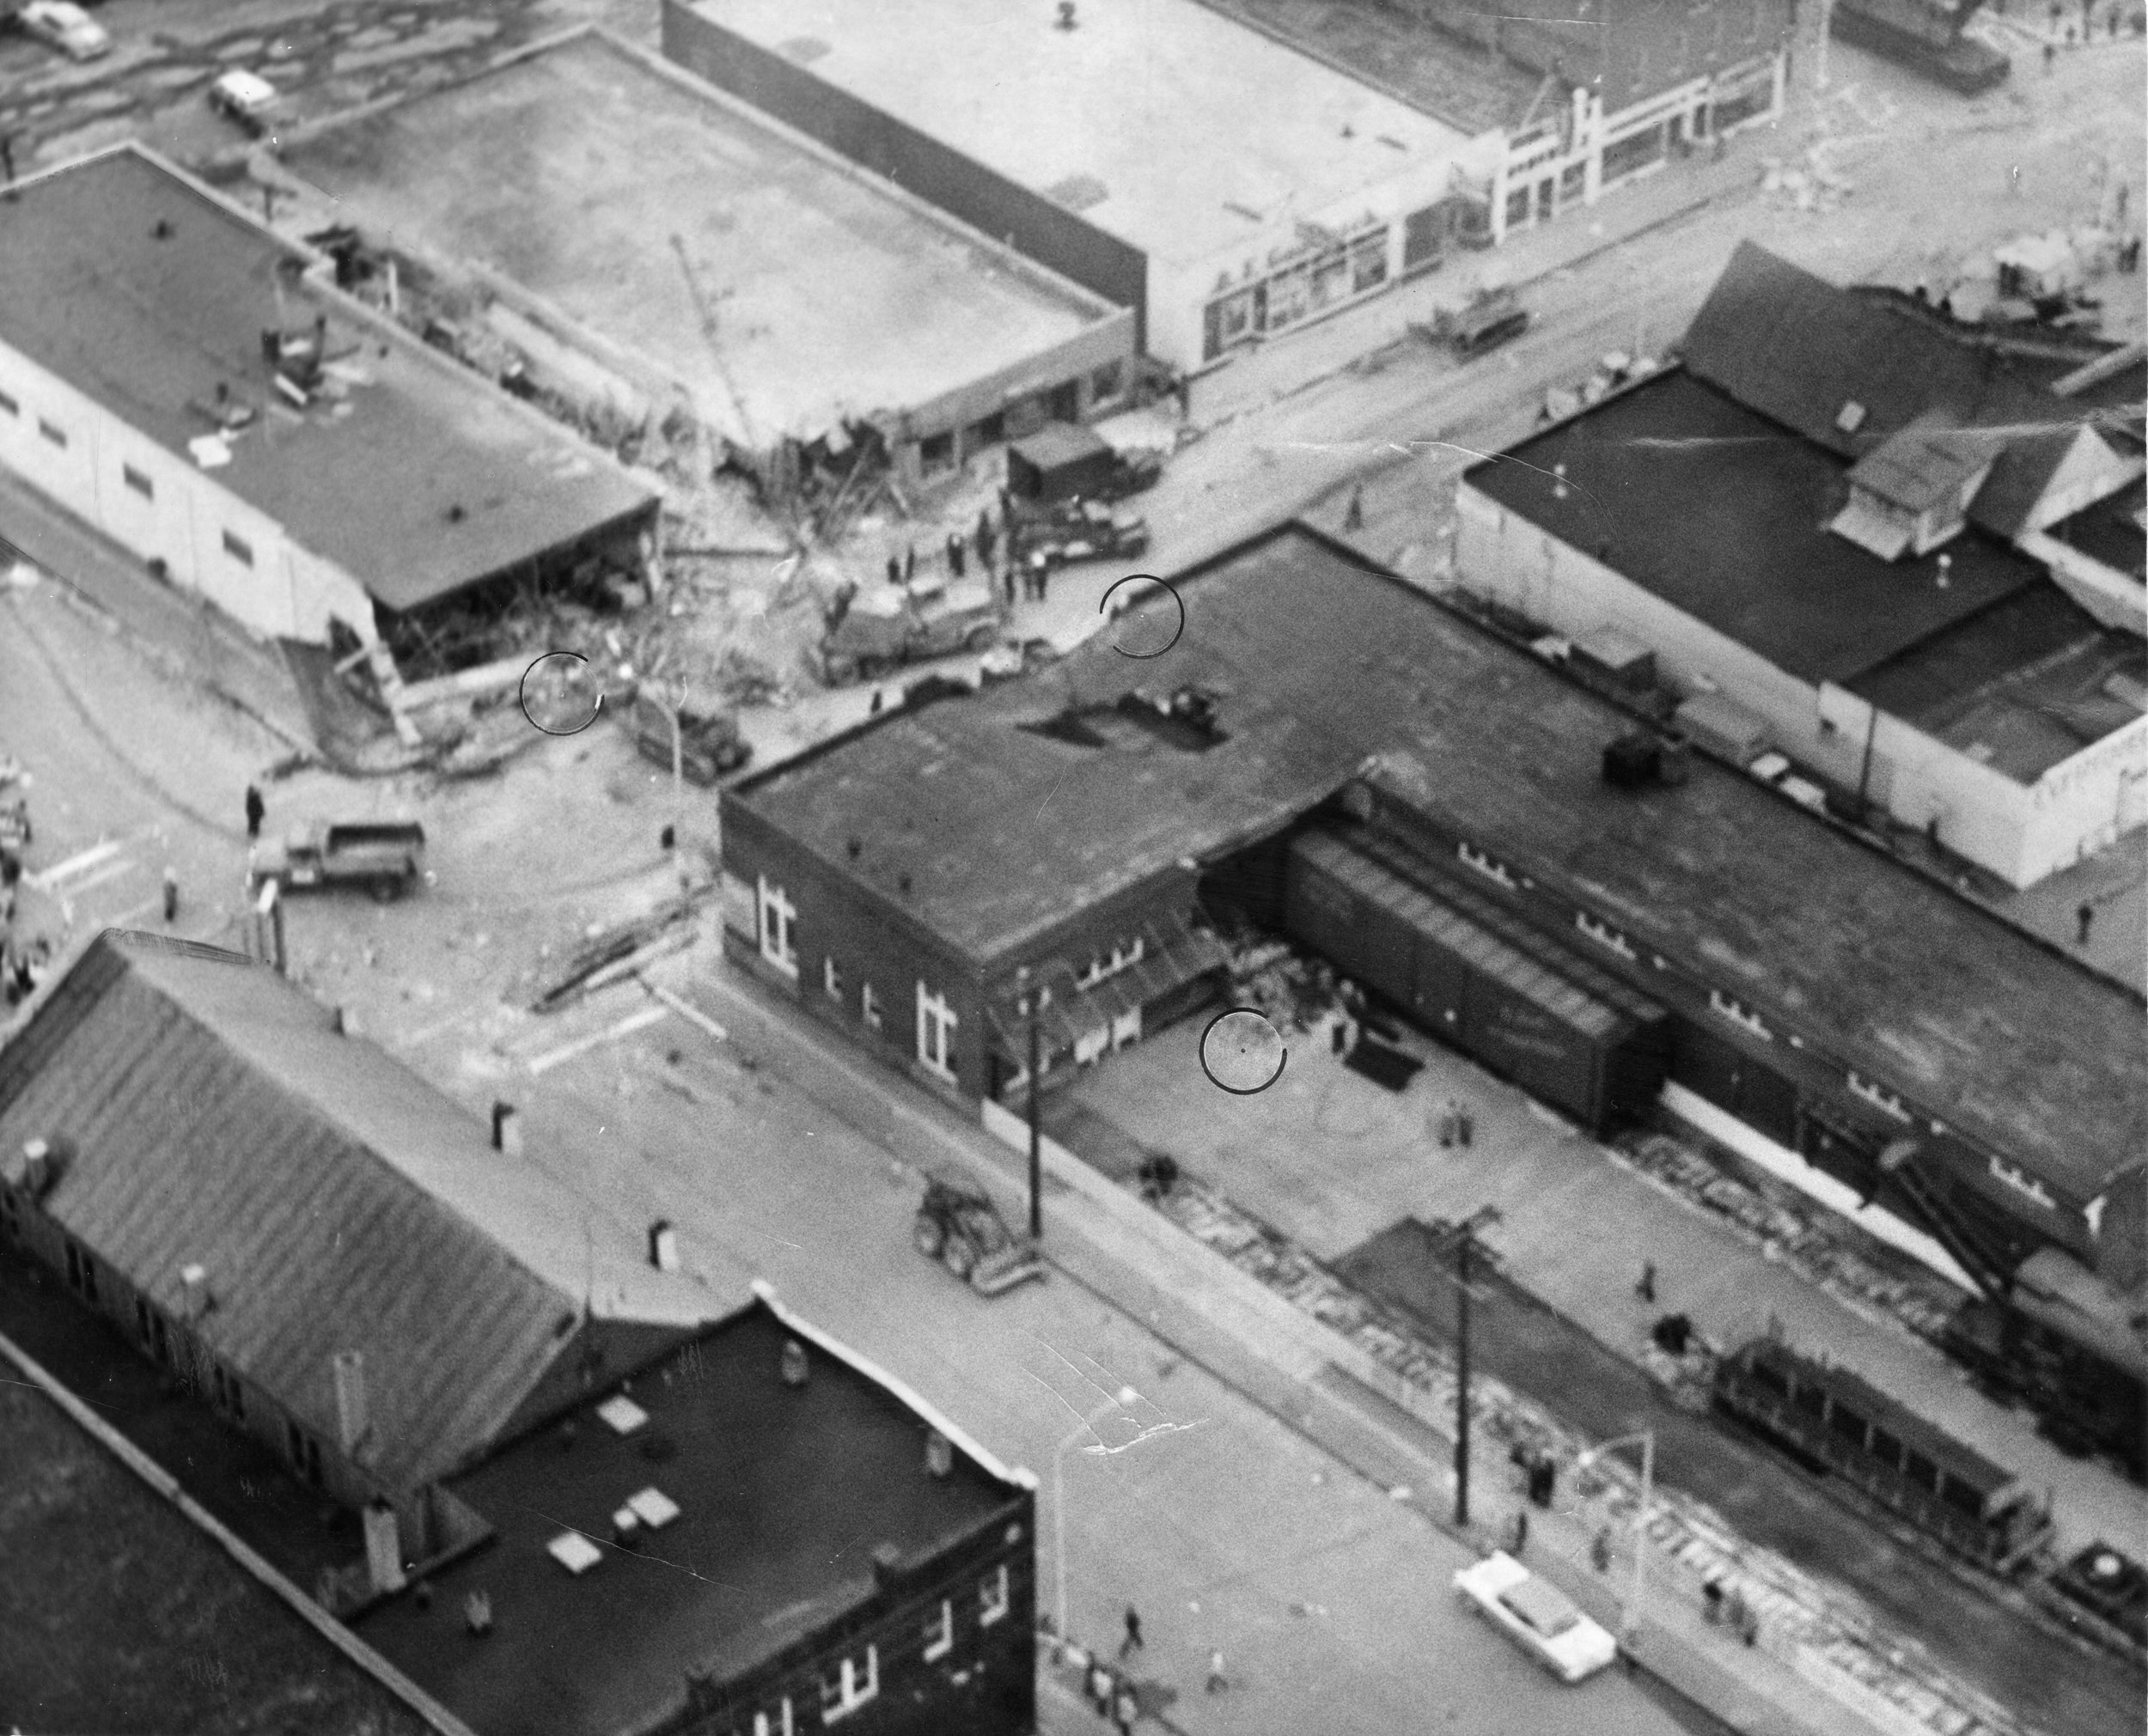 Looking north East from the air on day 2. I believe the building to the right of the train depot is the grocery store that Ruth's family parked in front of after a spot opened up. *State Archives